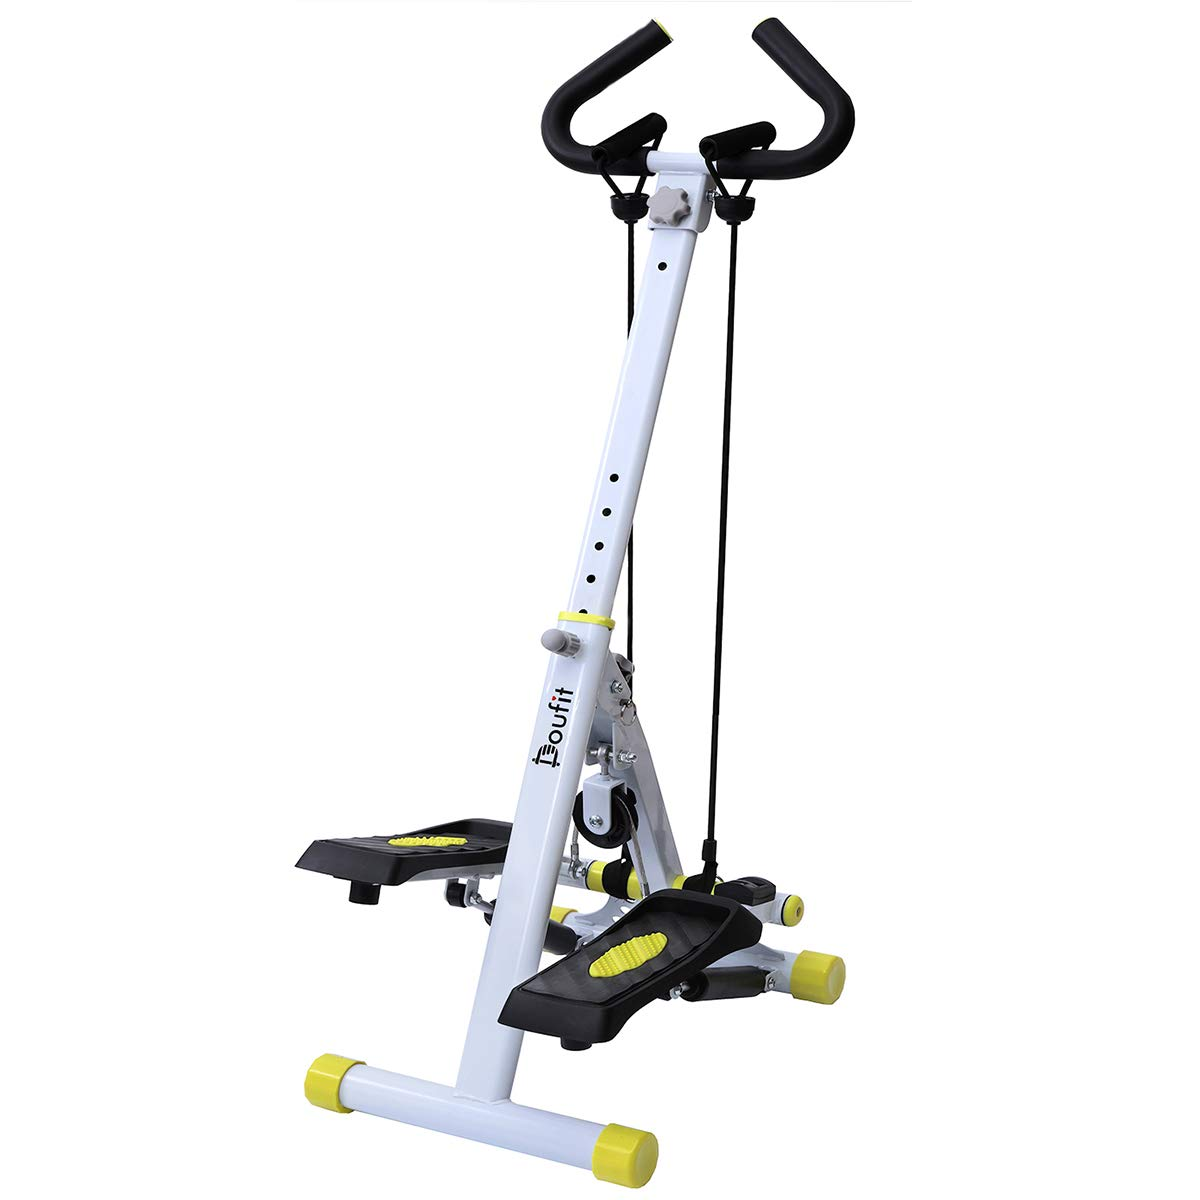 Stepper for Exercise Machine, Doufit ST-01 Folding Workout Step Machine for Home Use with LCD Monitor, Handle Bar and Resistance Bands